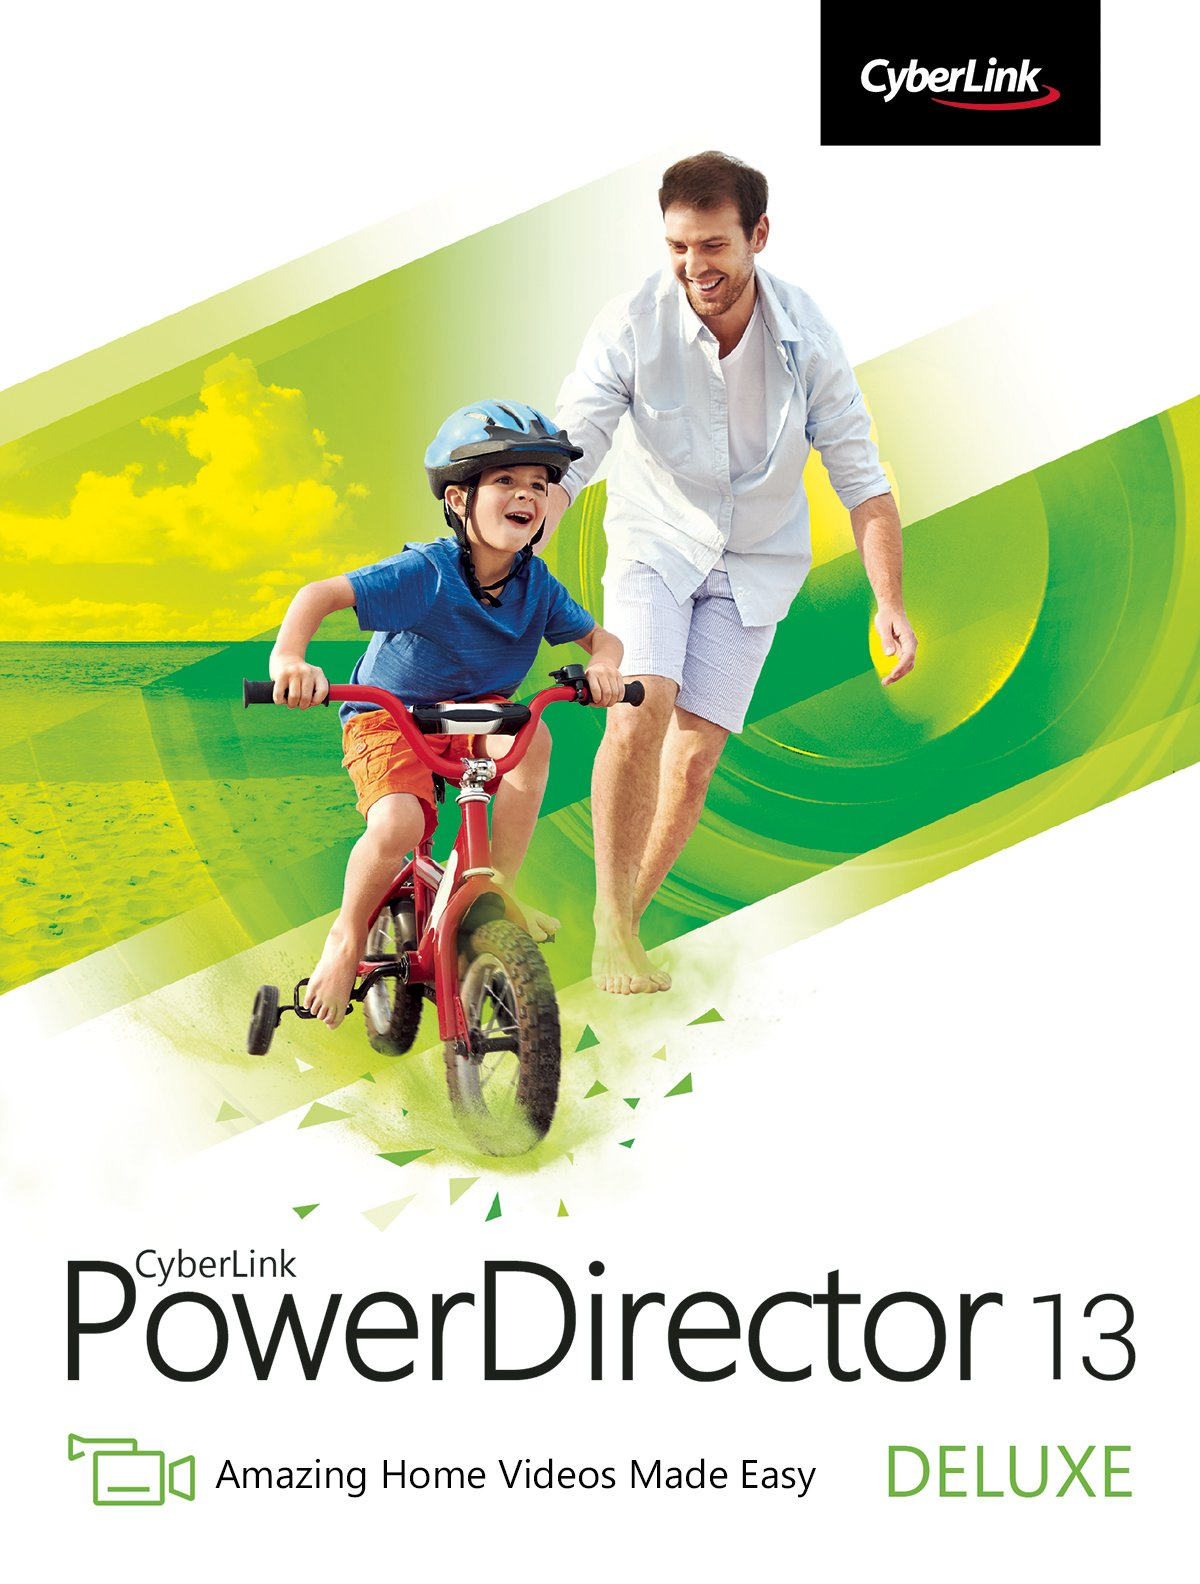 Cyberlink PowerDirector 13 Deluxe